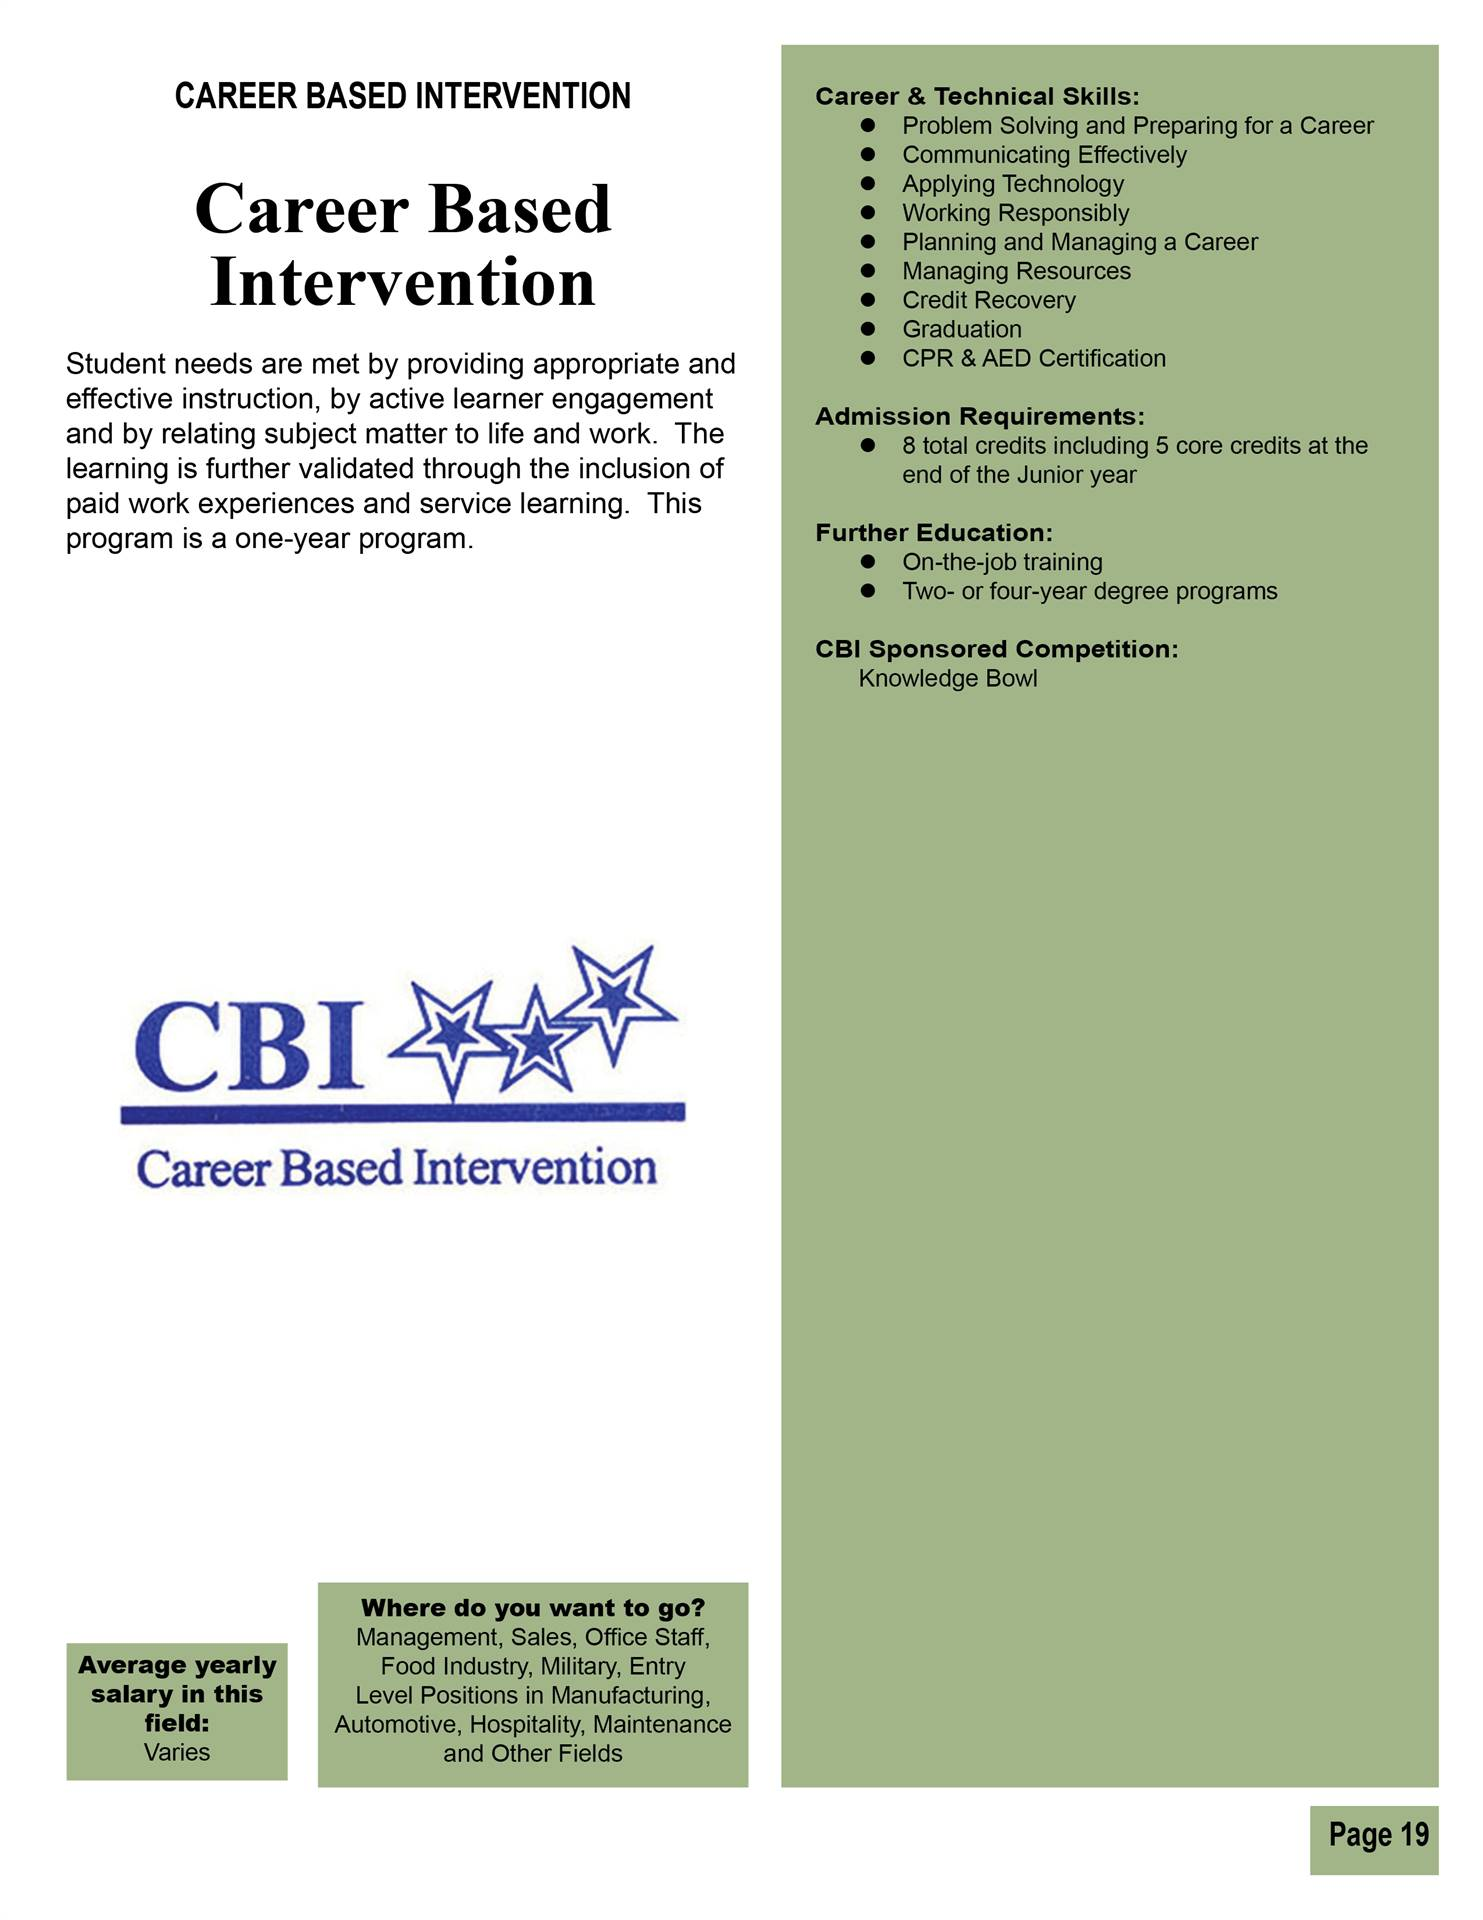 Career Based Intervention